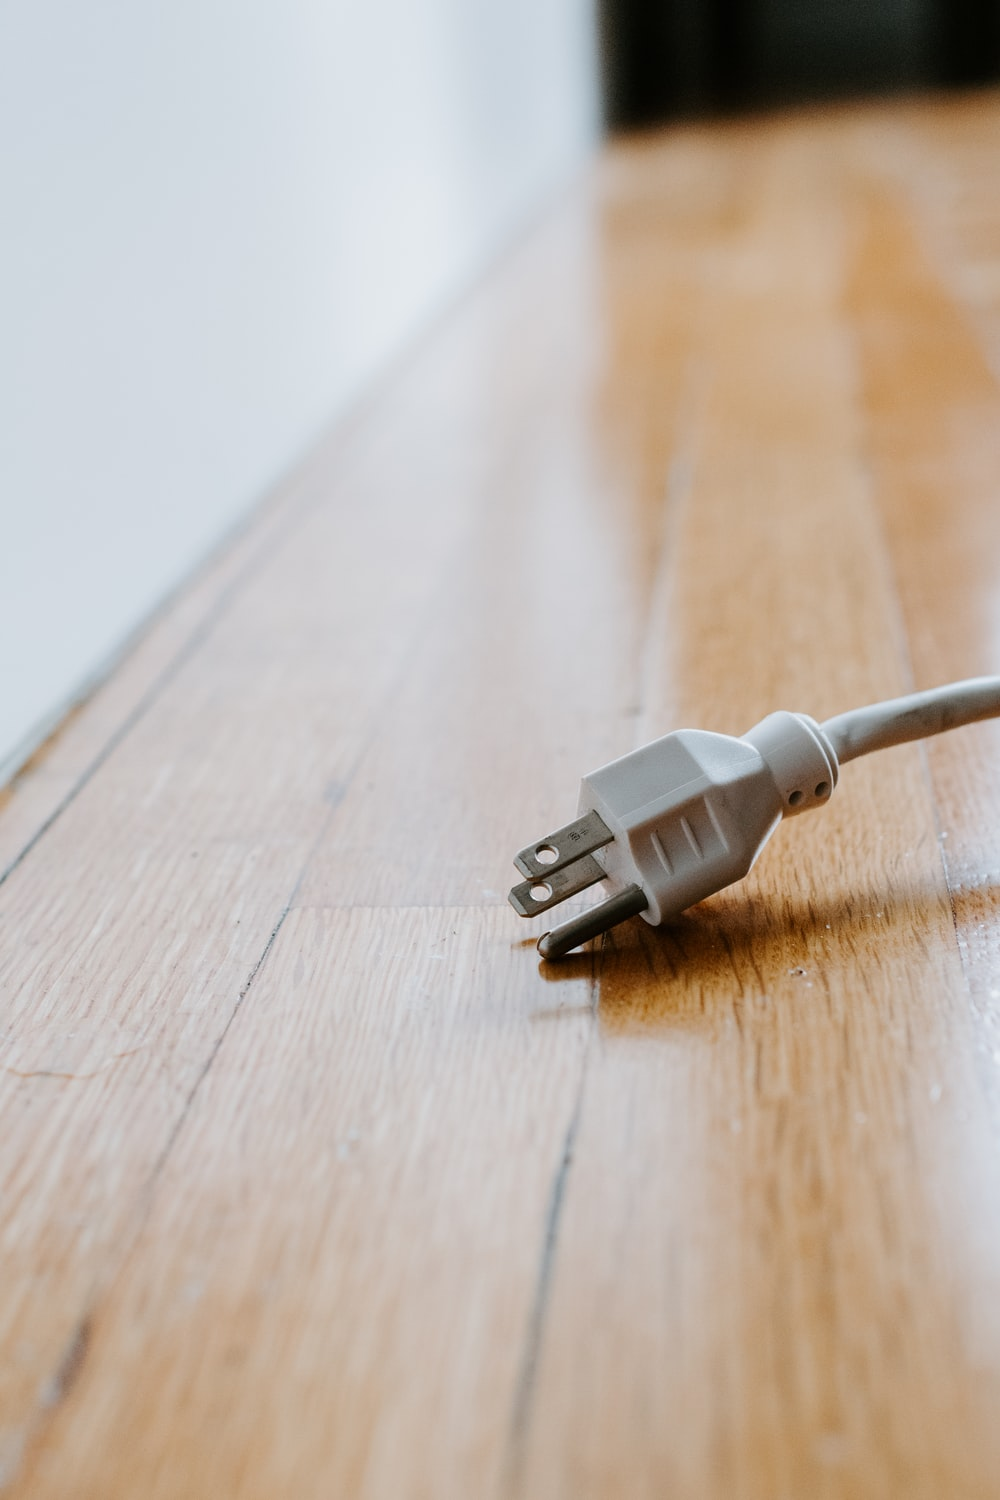 white usb cable on brown wooden table